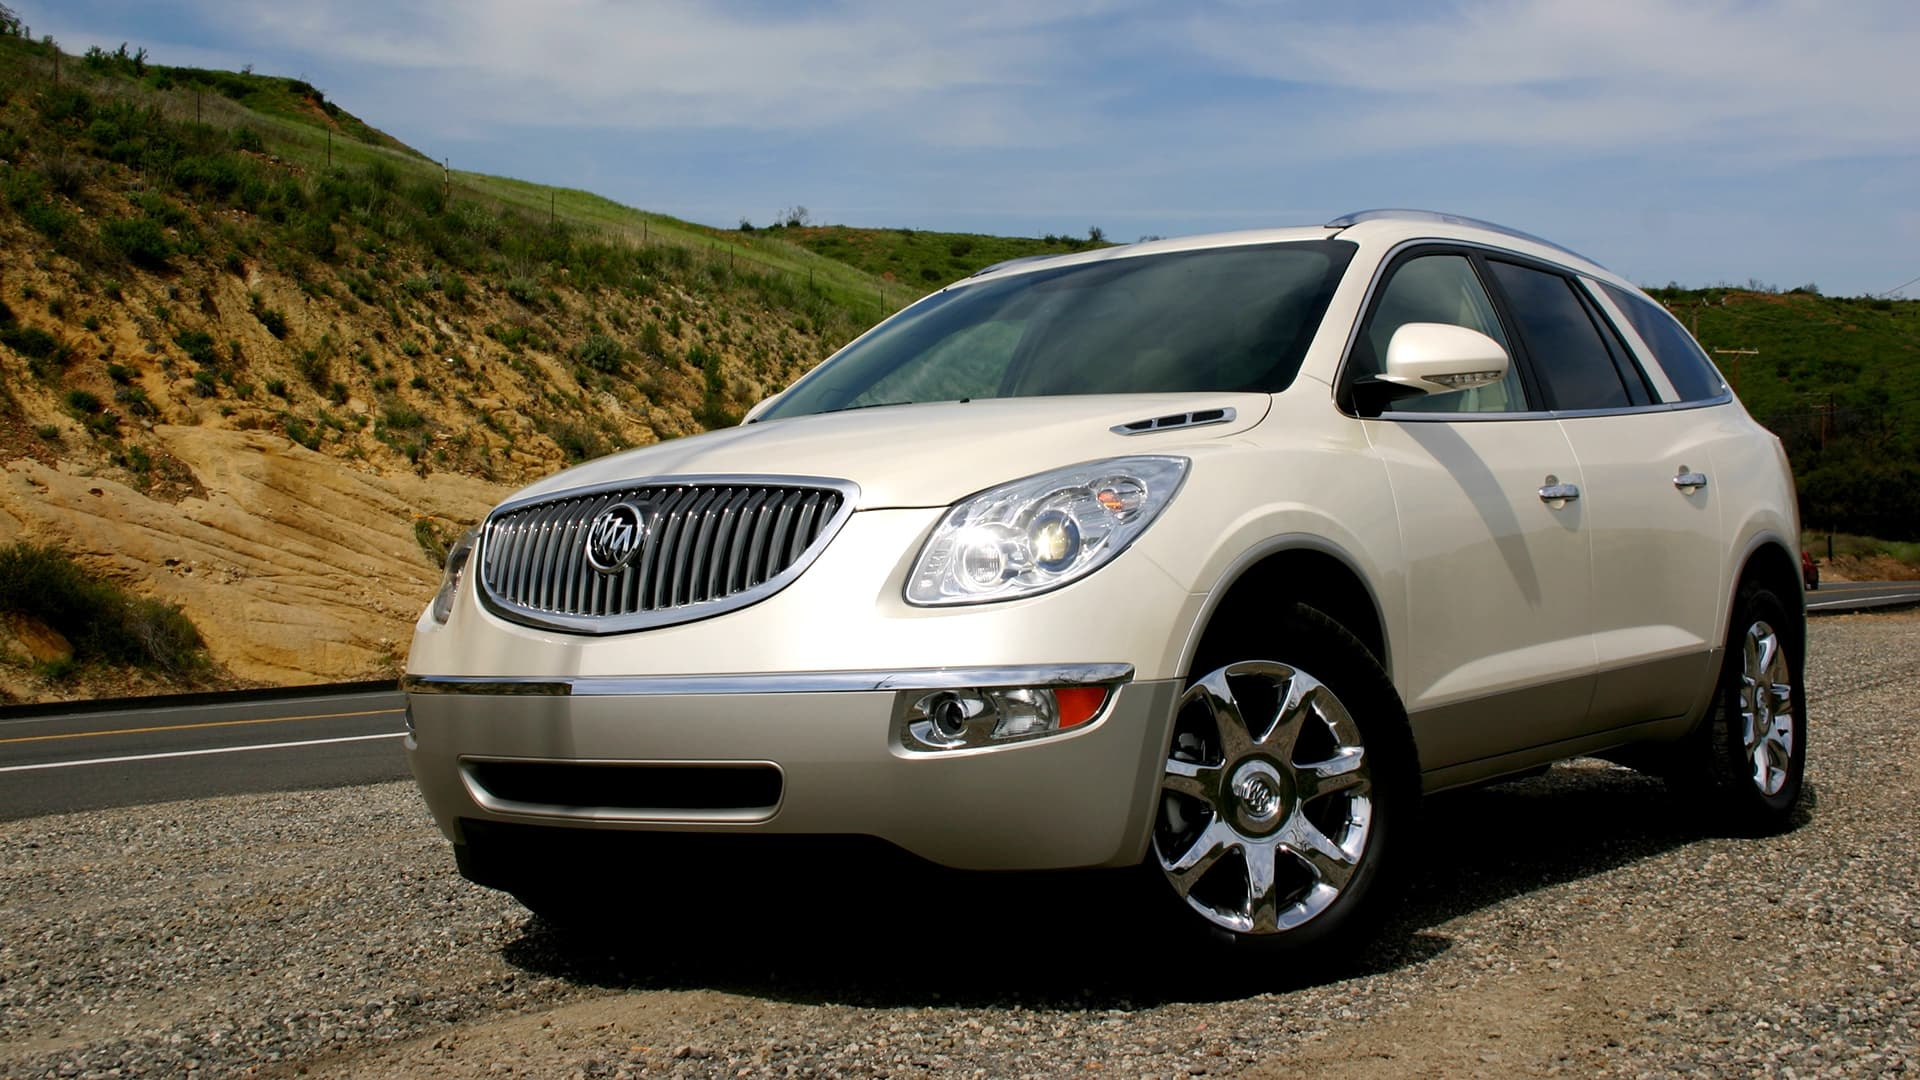 2010 Buick Enclave HD wallpaper for PC